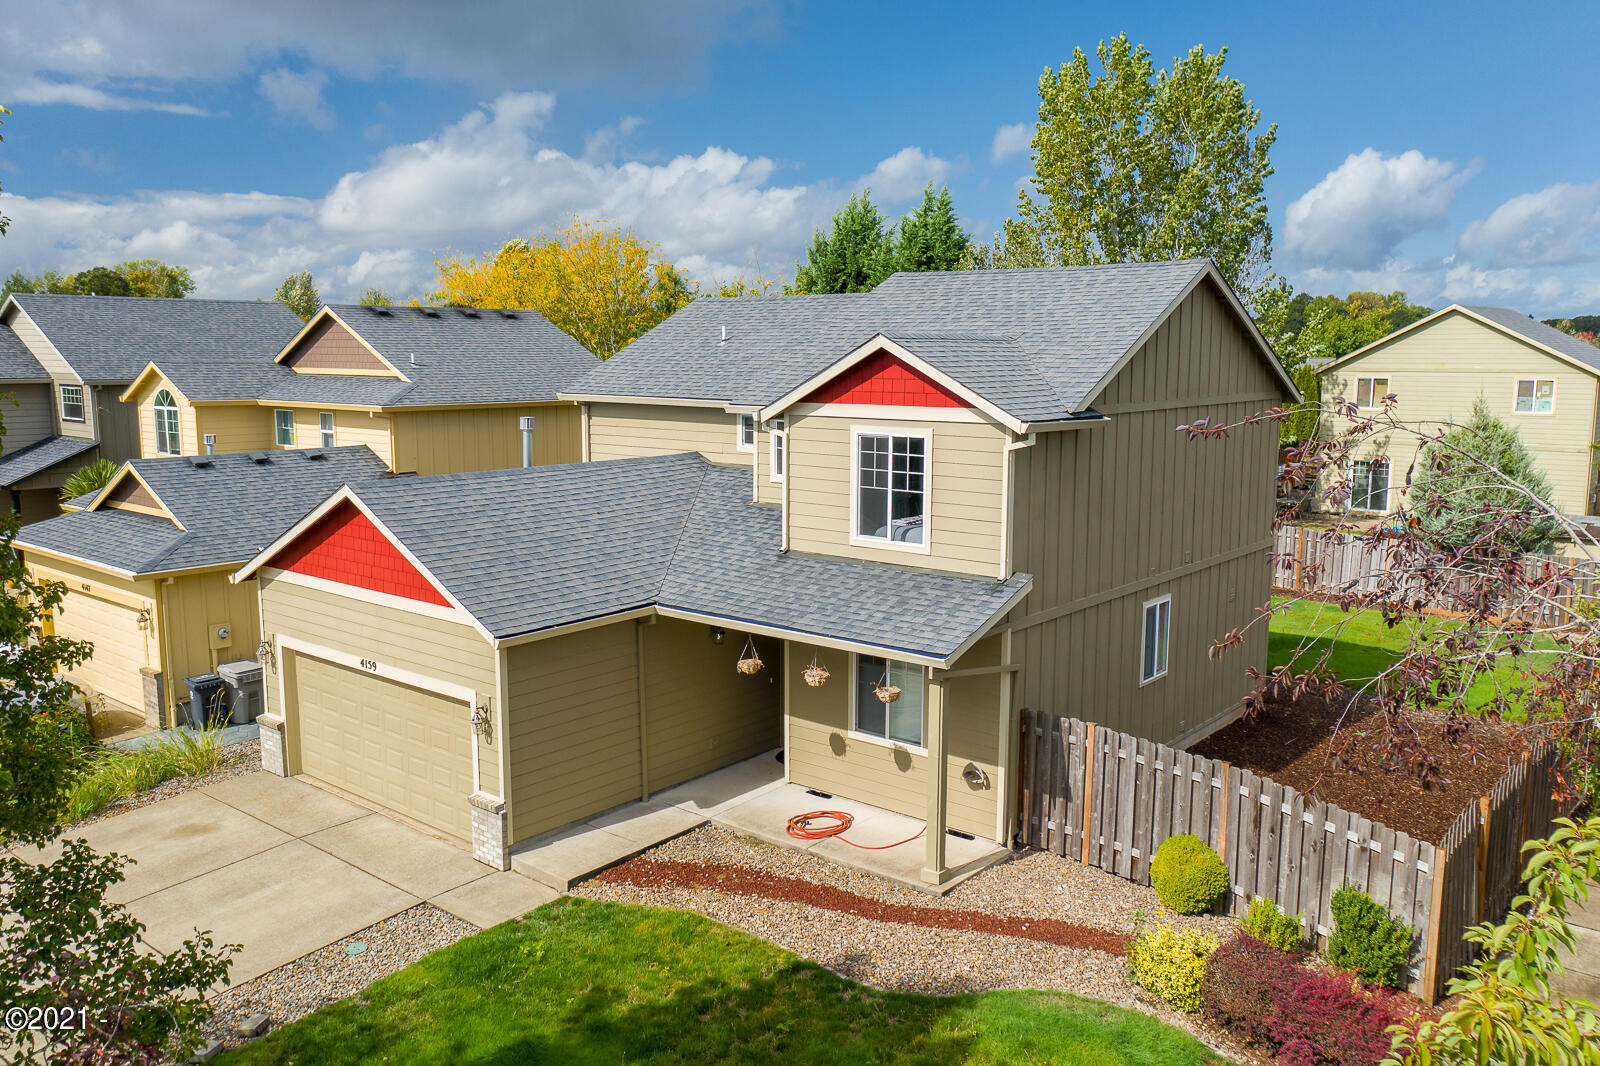 4159 Gusty Ave NE, Albany, OR 97322 - 4159 Gusty Ave